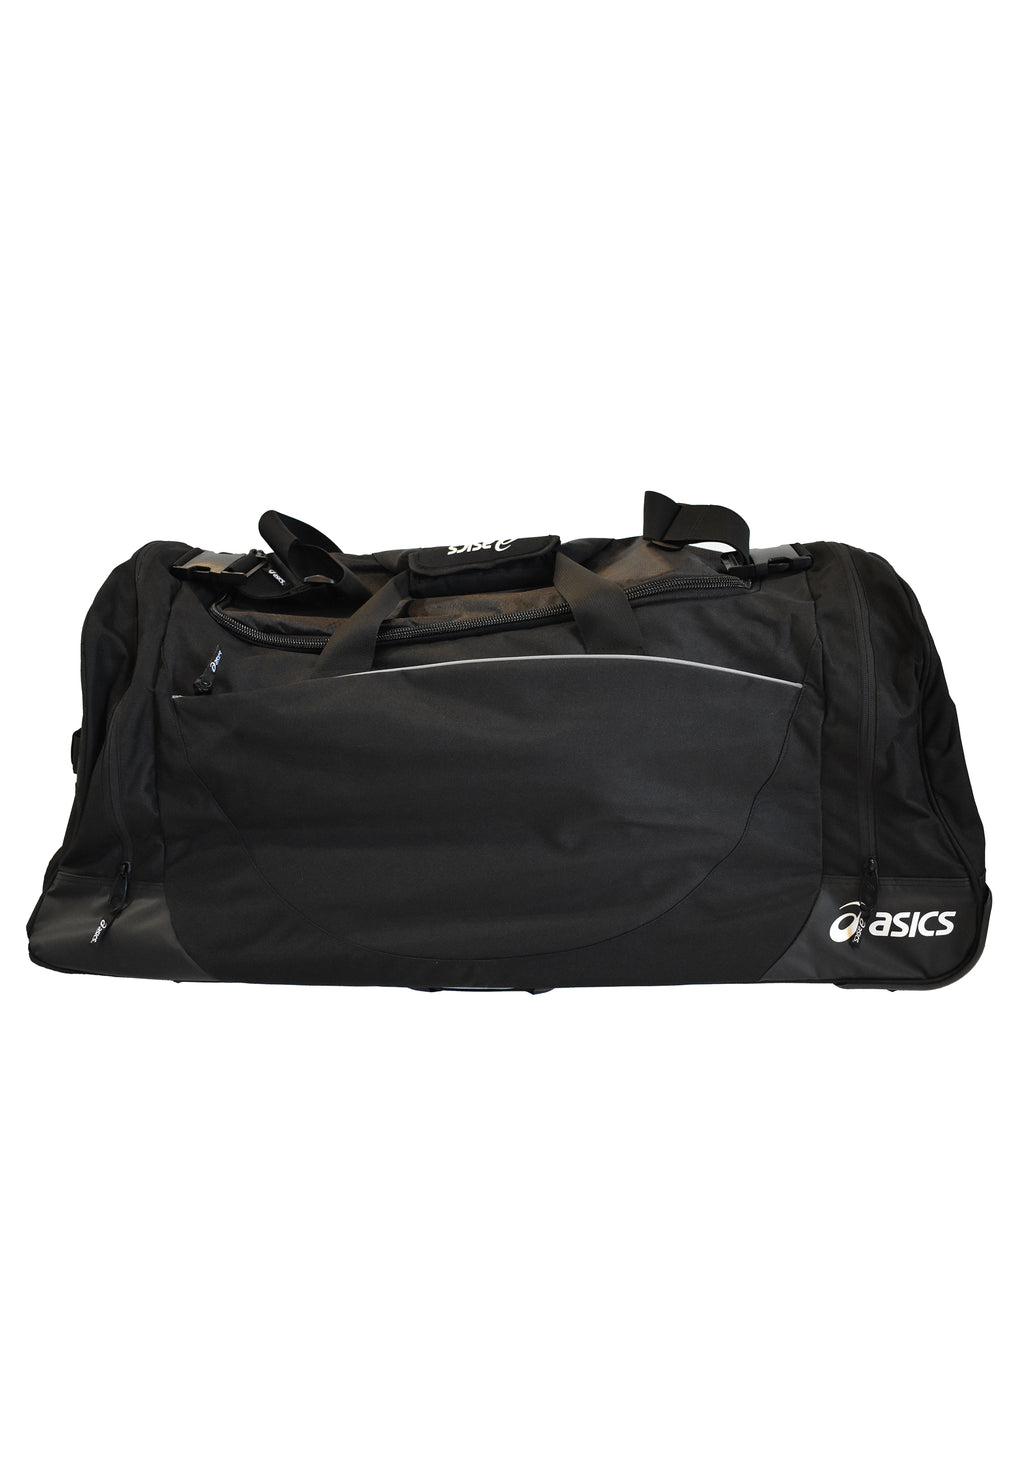 ASICS HEAVY DUTY TEAM WHEEL BAG <BR> ABGW4011